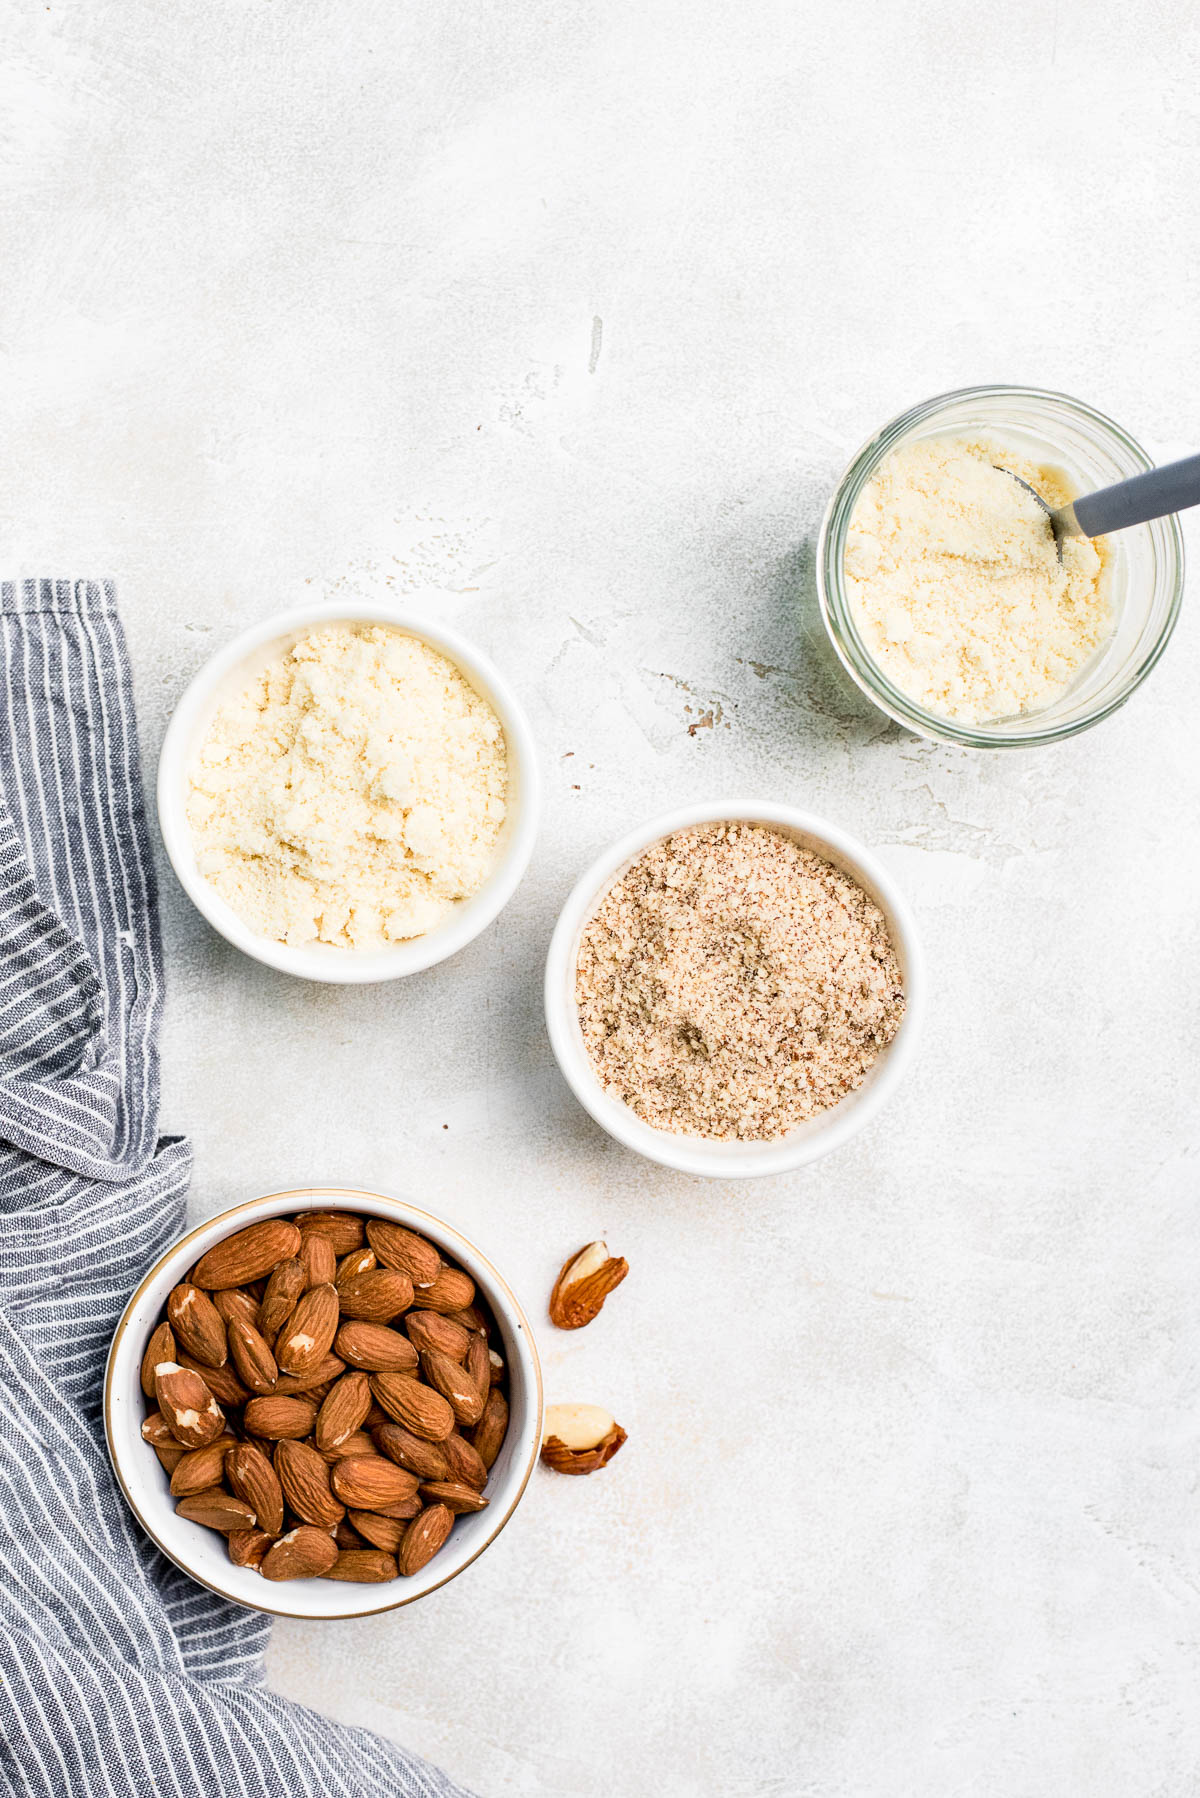 almond flour and almond meal in jars together